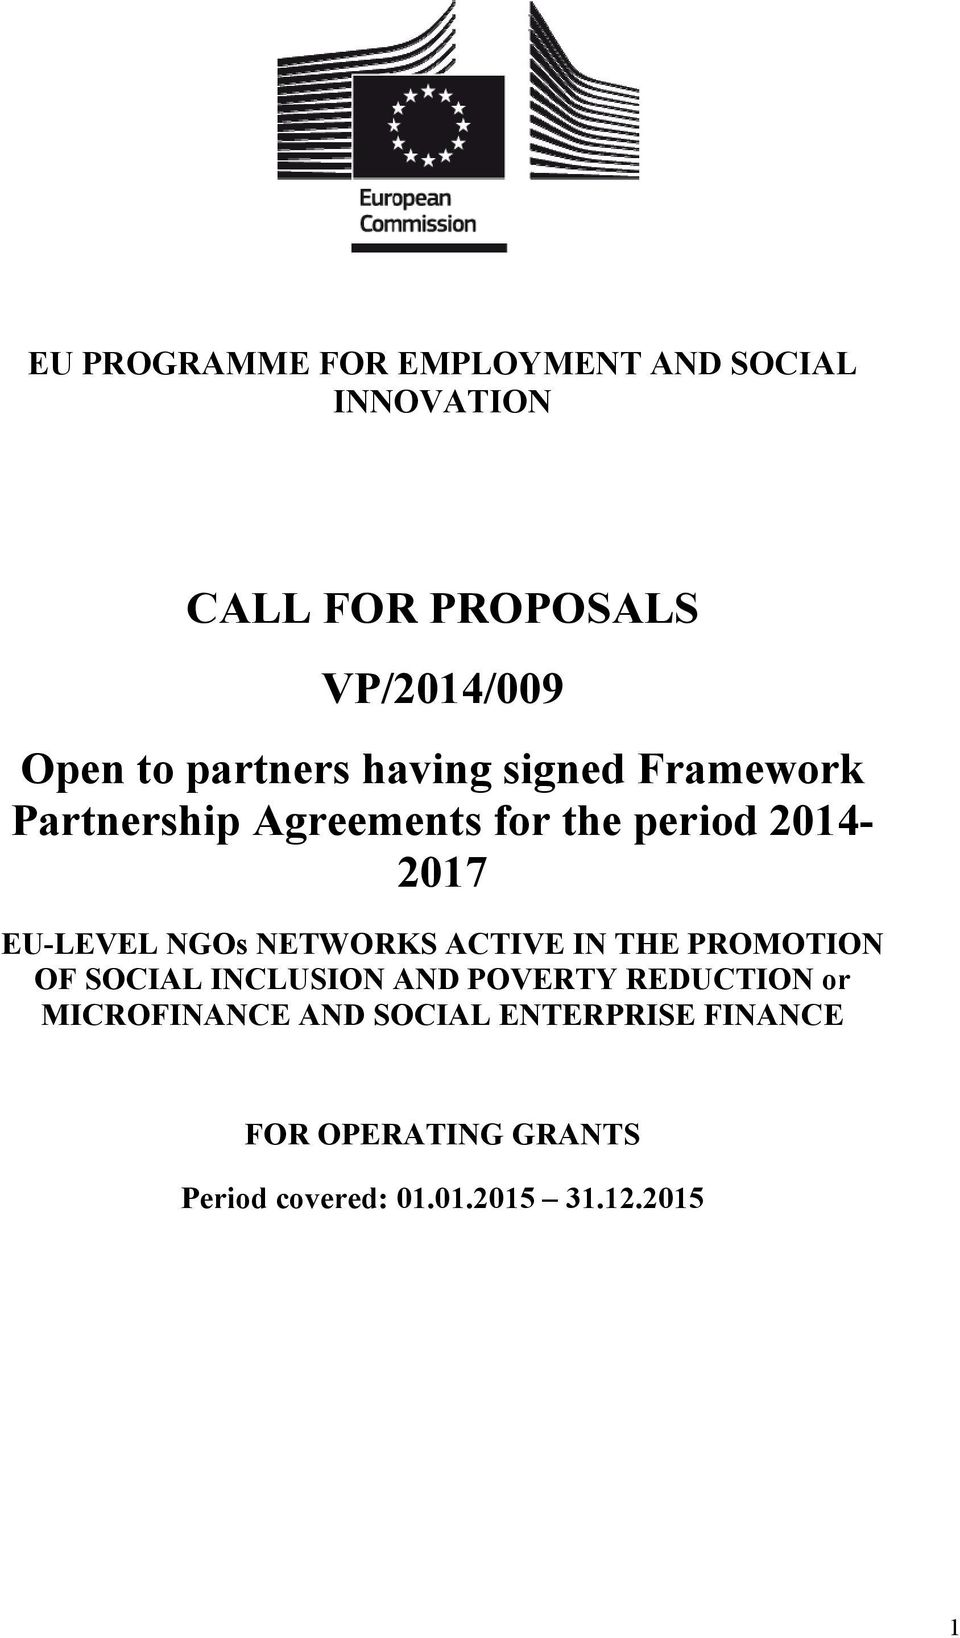 NGOs NETWORKS ACTIVE IN THE PROMOTION OF SOCIAL INCLUSION AND POVERTY REDUCTION or